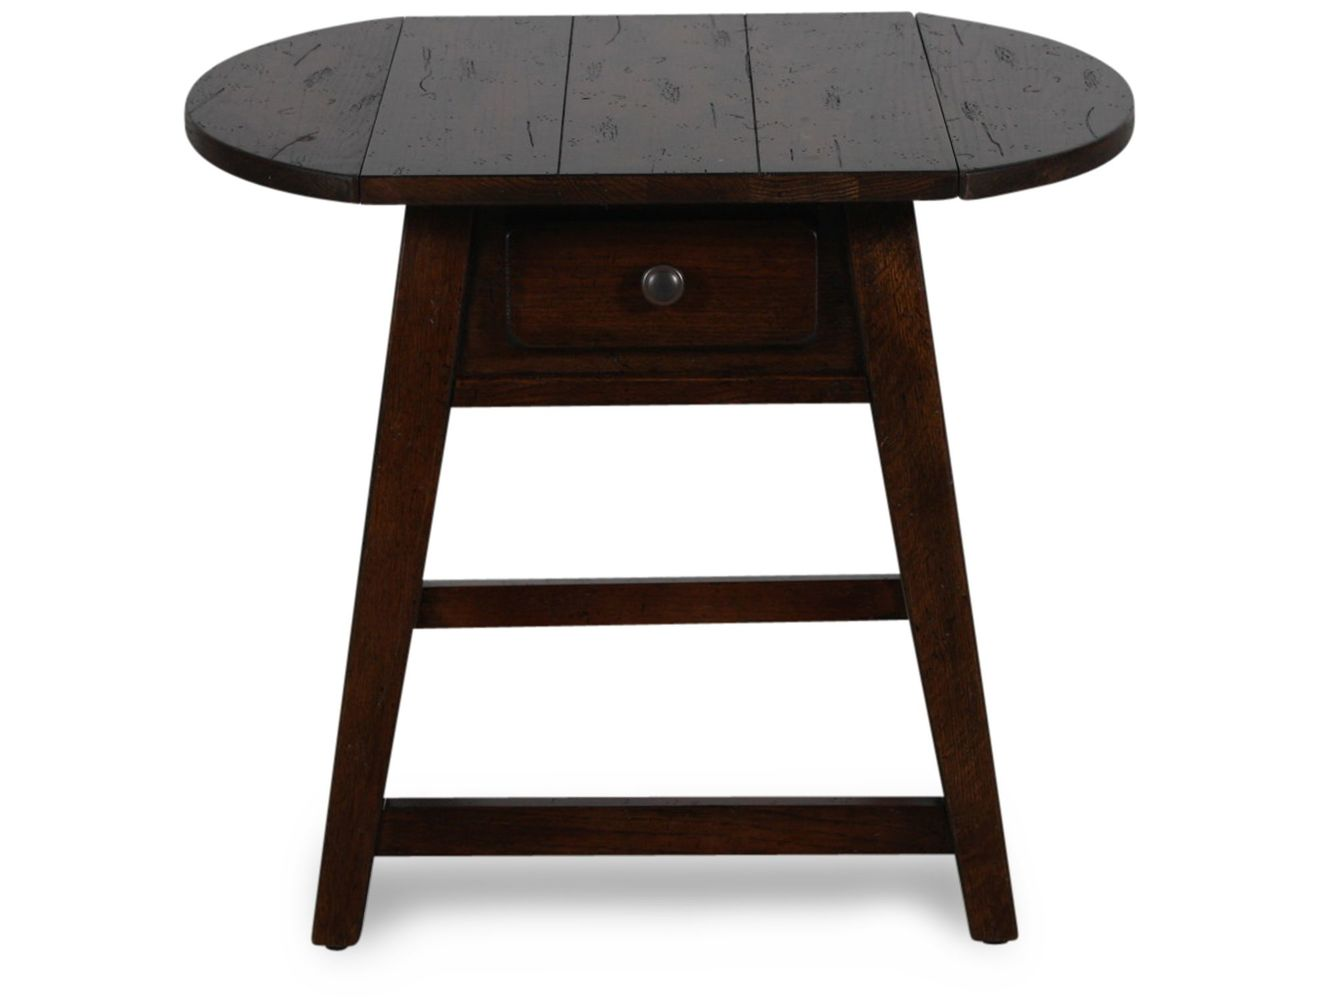 buffet furniture probably super great oval wood end table tapered legs country dark oak mathis brothers broy tablenbspin tables usa pottery barn ott simple bedside raw edge coffee